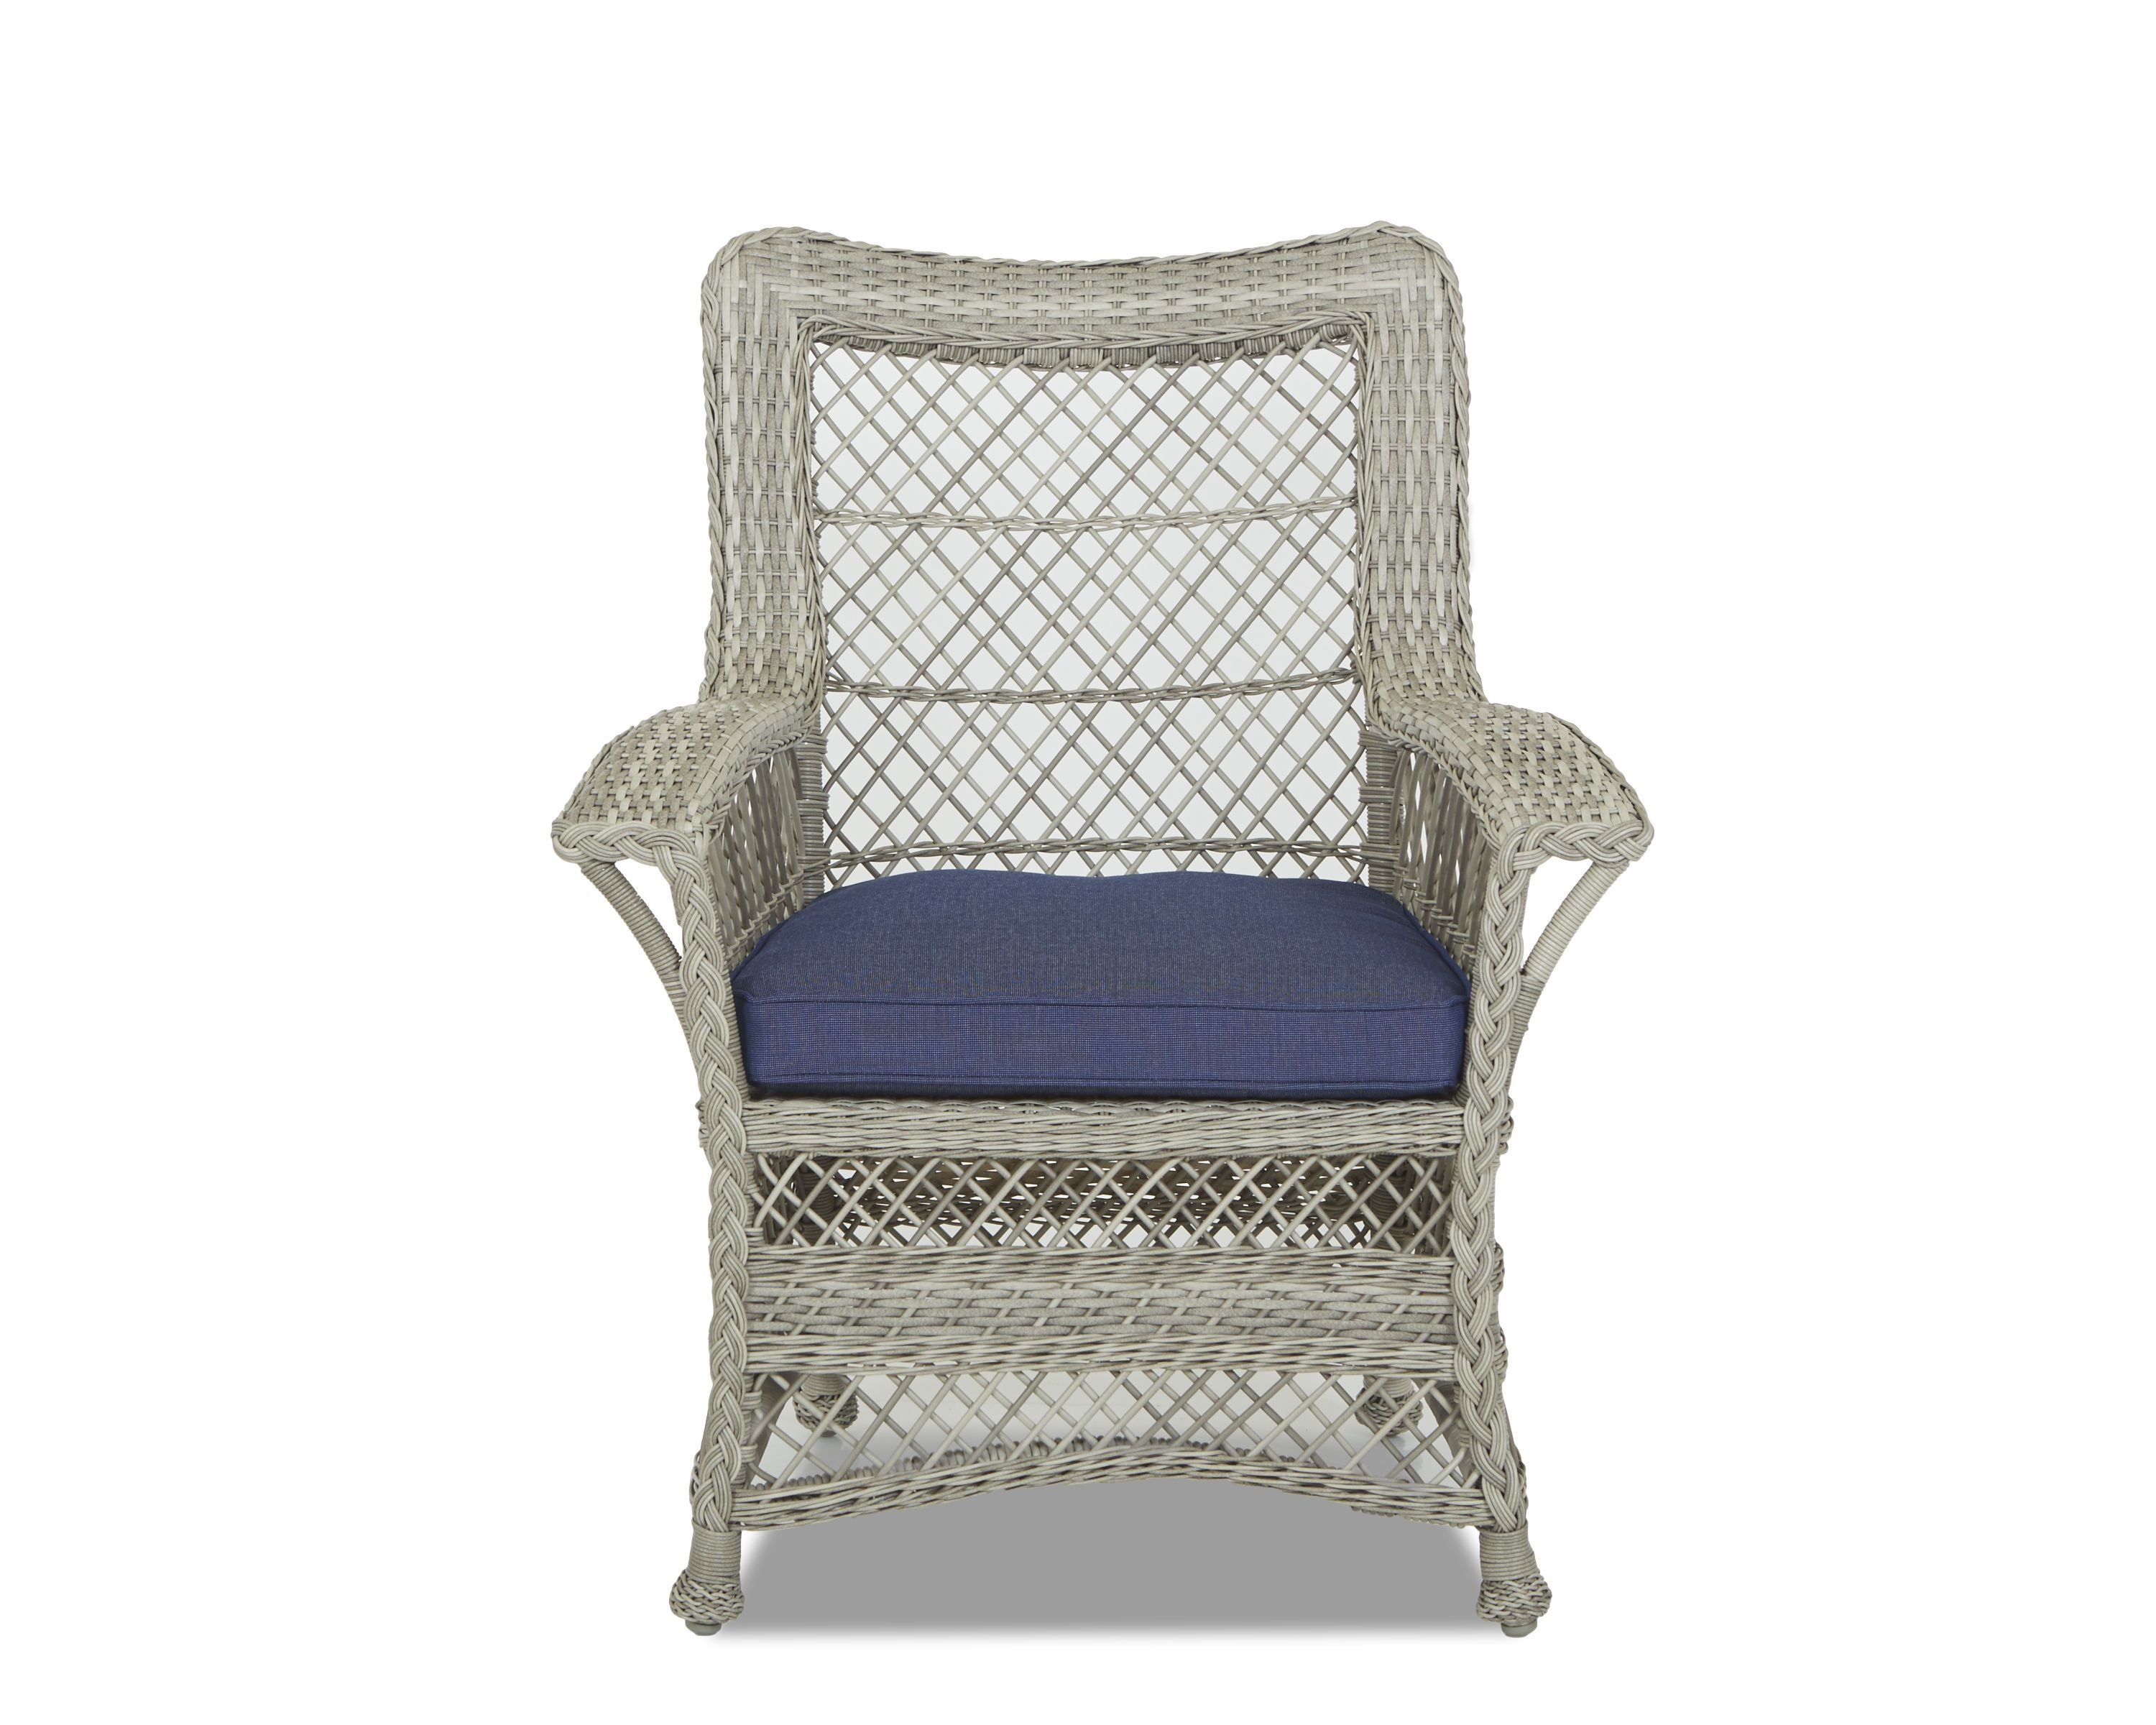 Klaussner Outdoor Outdoor/Patio Willow Dining Chair W1200 DRC - Klaussner Outdoor - Asheboro, NC